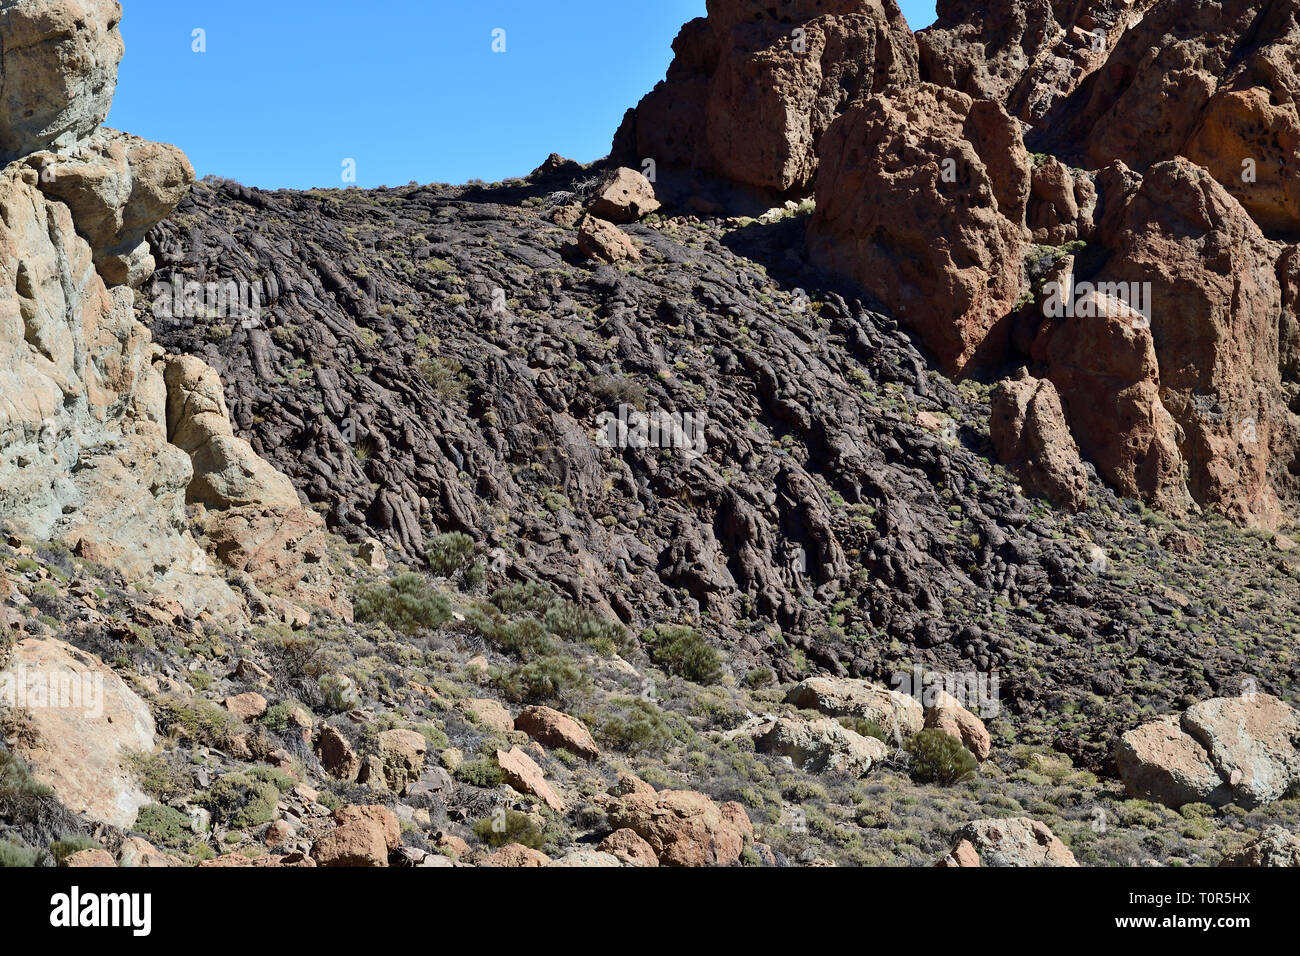 View of a lava field in Teide National Park in Tenerife - Stock Image